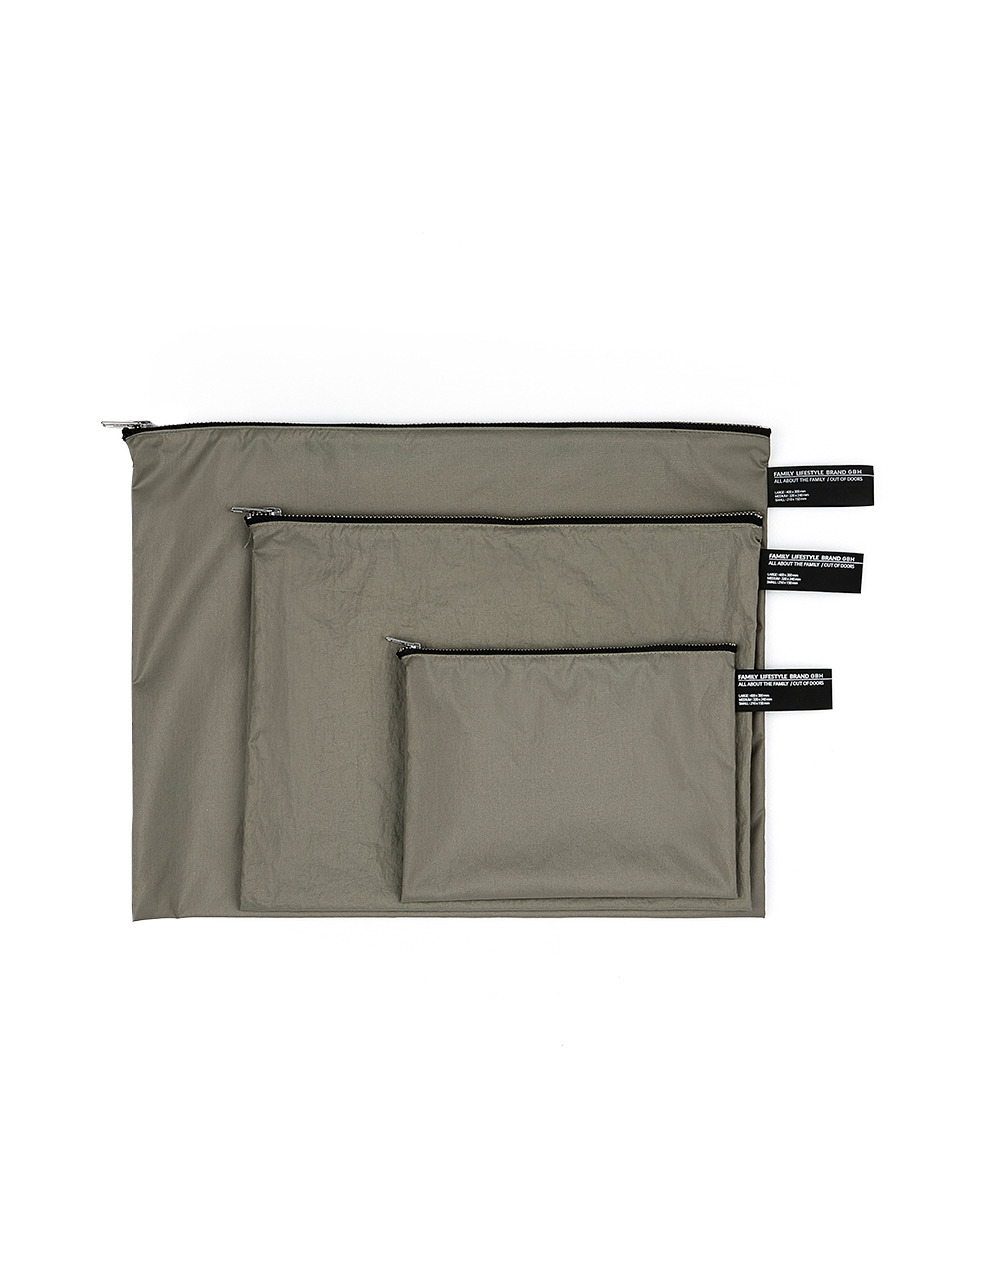 GBH HOME Waterproof Pouch GREY (3 SIZE)